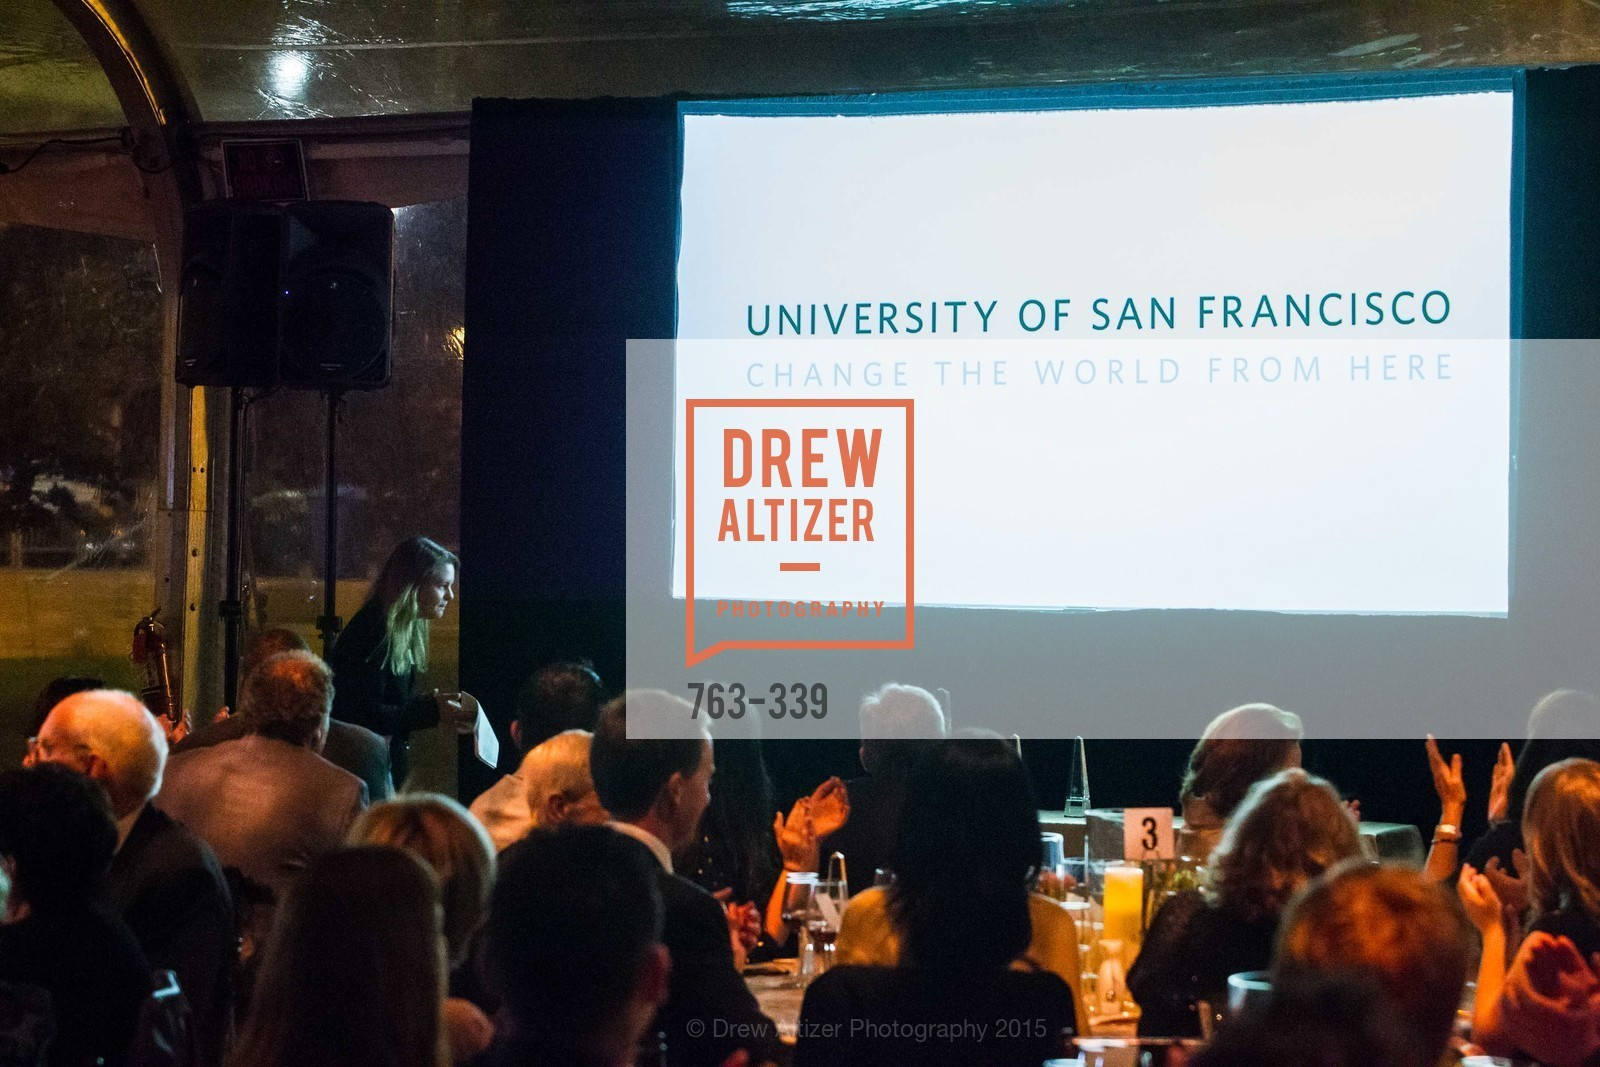 Atmosphere, University of San Francisco Alumni Awards Gala 2015, University of San Francisco, October 2nd, 2015,Drew Altizer, Drew Altizer Photography, full-service event agency, private events, San Francisco photographer, photographer California